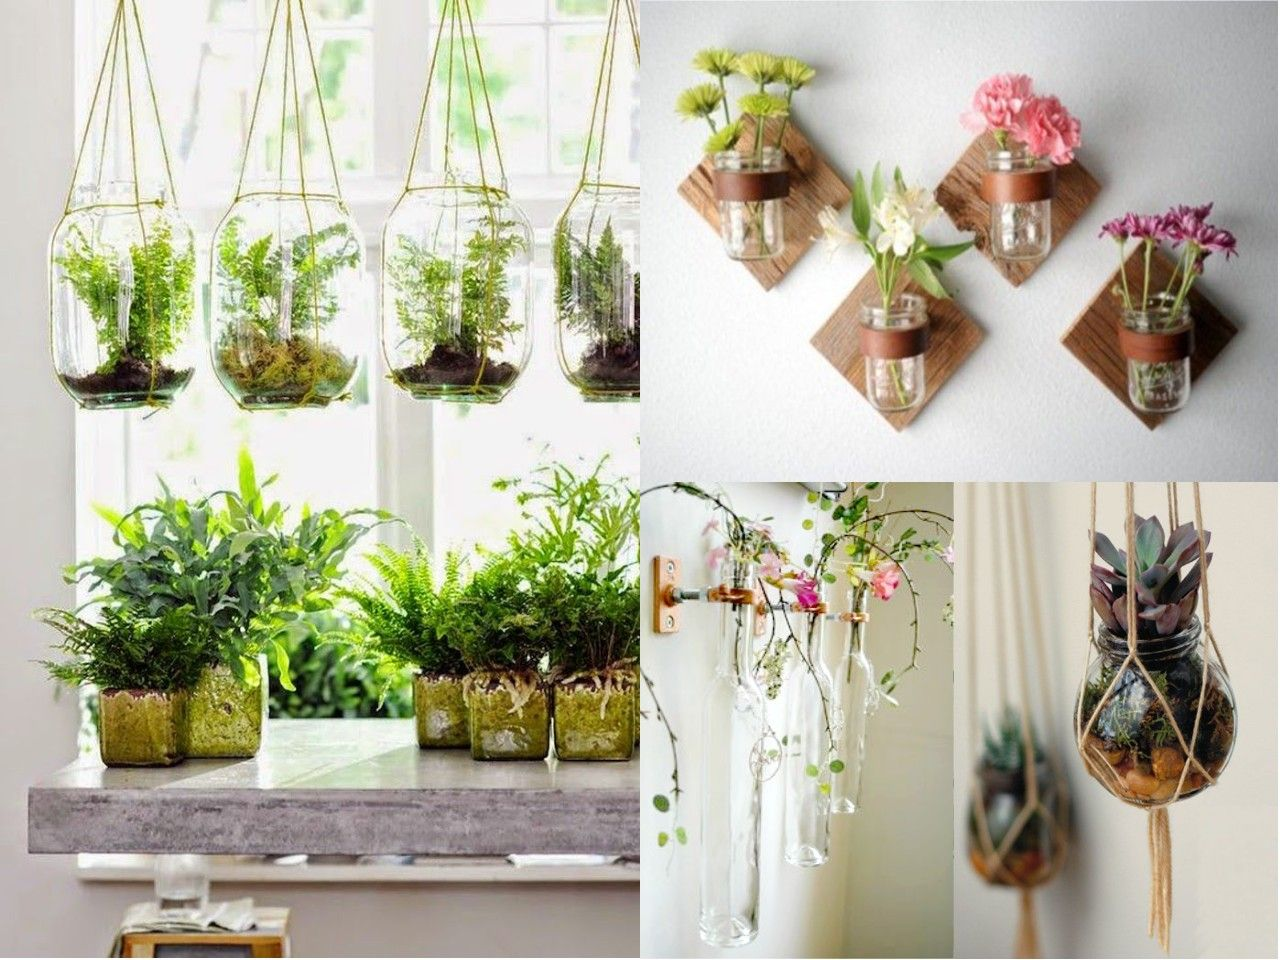 Plantas colgantes para interiores decoraci n del hogar for Decoracion con plantas crasas